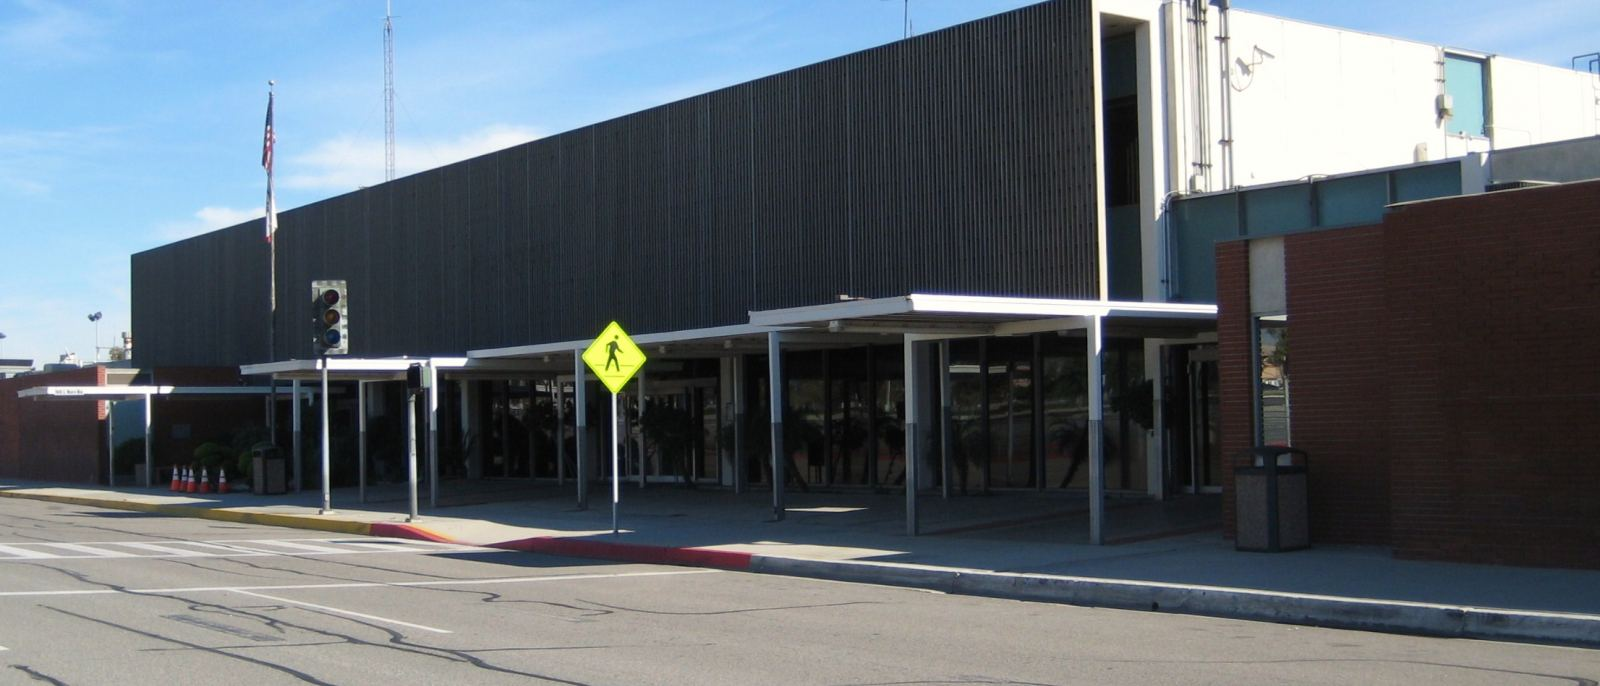 The old Terminal 1 at Ontario International Airport